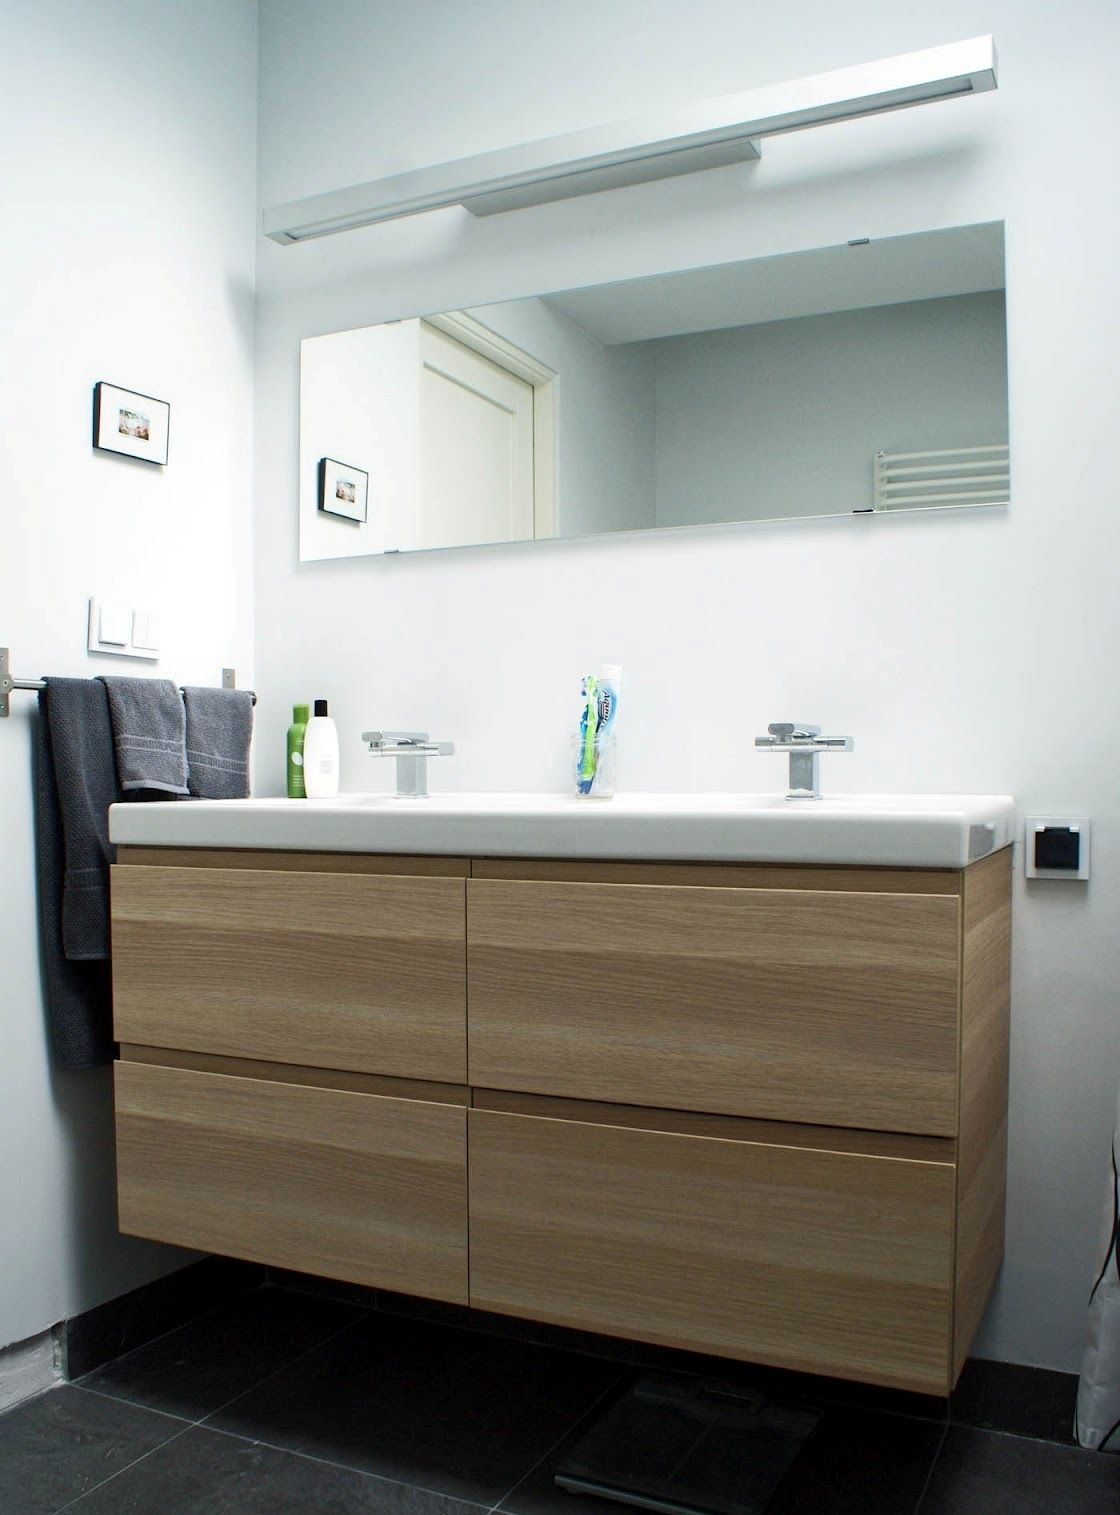 Interesting ikea bathroom vanity simple ikea bathroom - Vanities for small bathrooms ikea ...